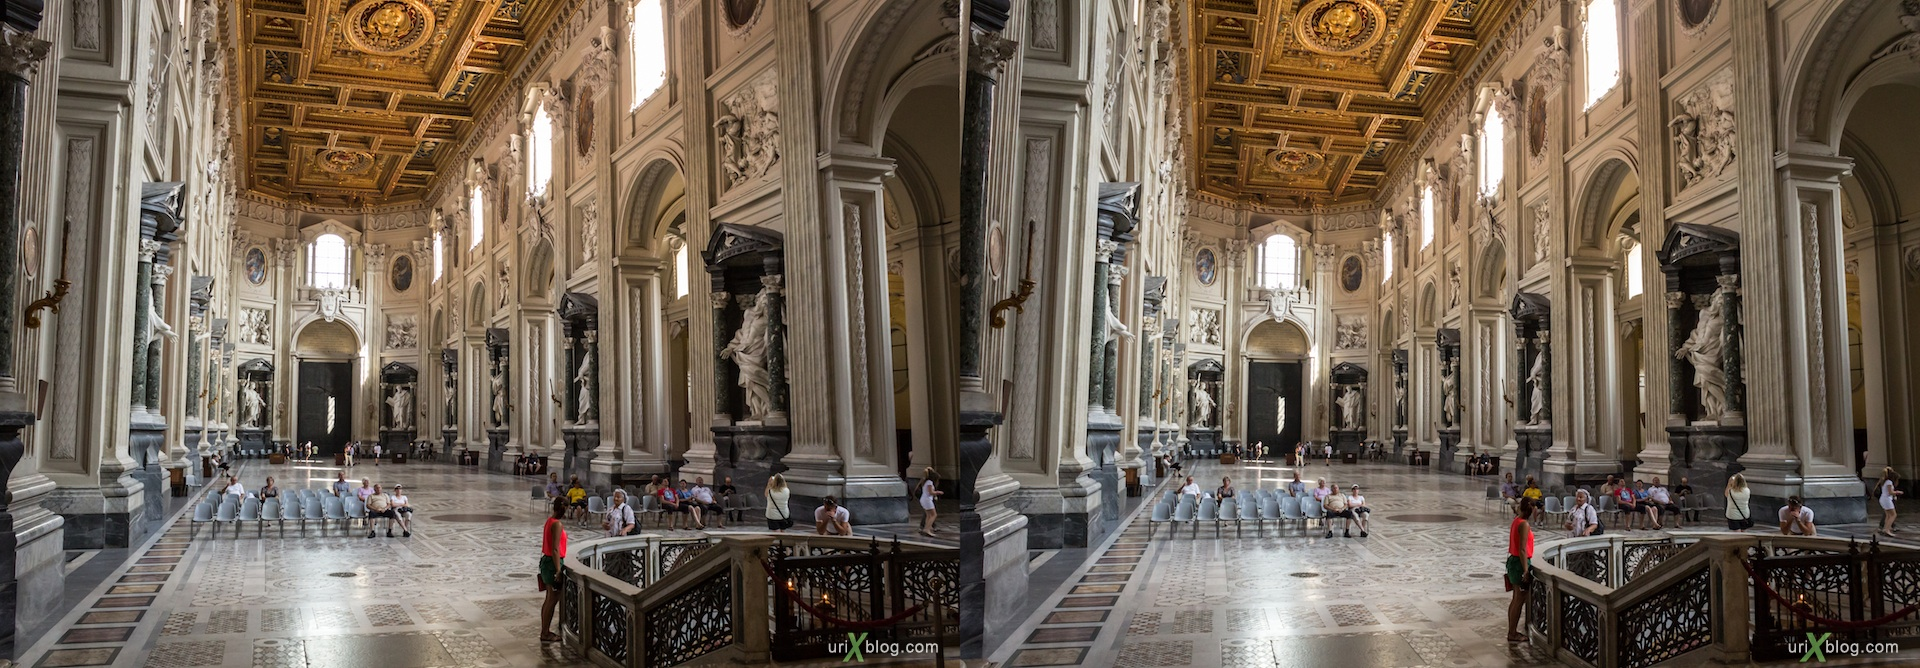 2012, church, basilica of San Giovanni in Laterano, Rome, Italy, cathedral, monastery, Christianity, Catholicism, 3D, stereo pair, cross-eyed, crossview, cross view stereo pair